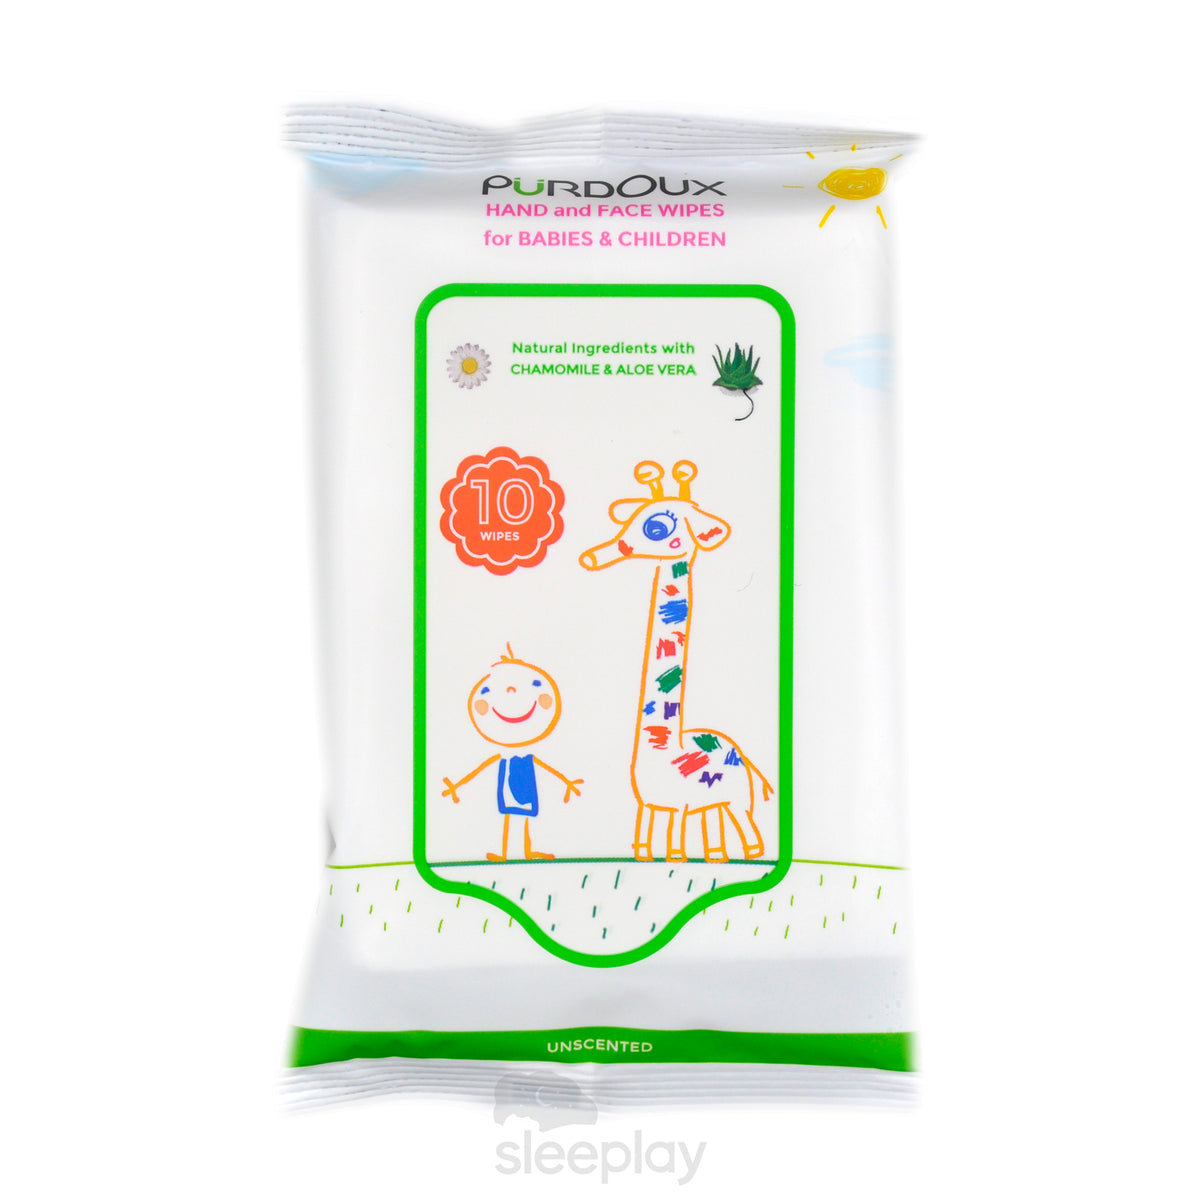 Single Bag Of Purdoux Babies And Children Wipes